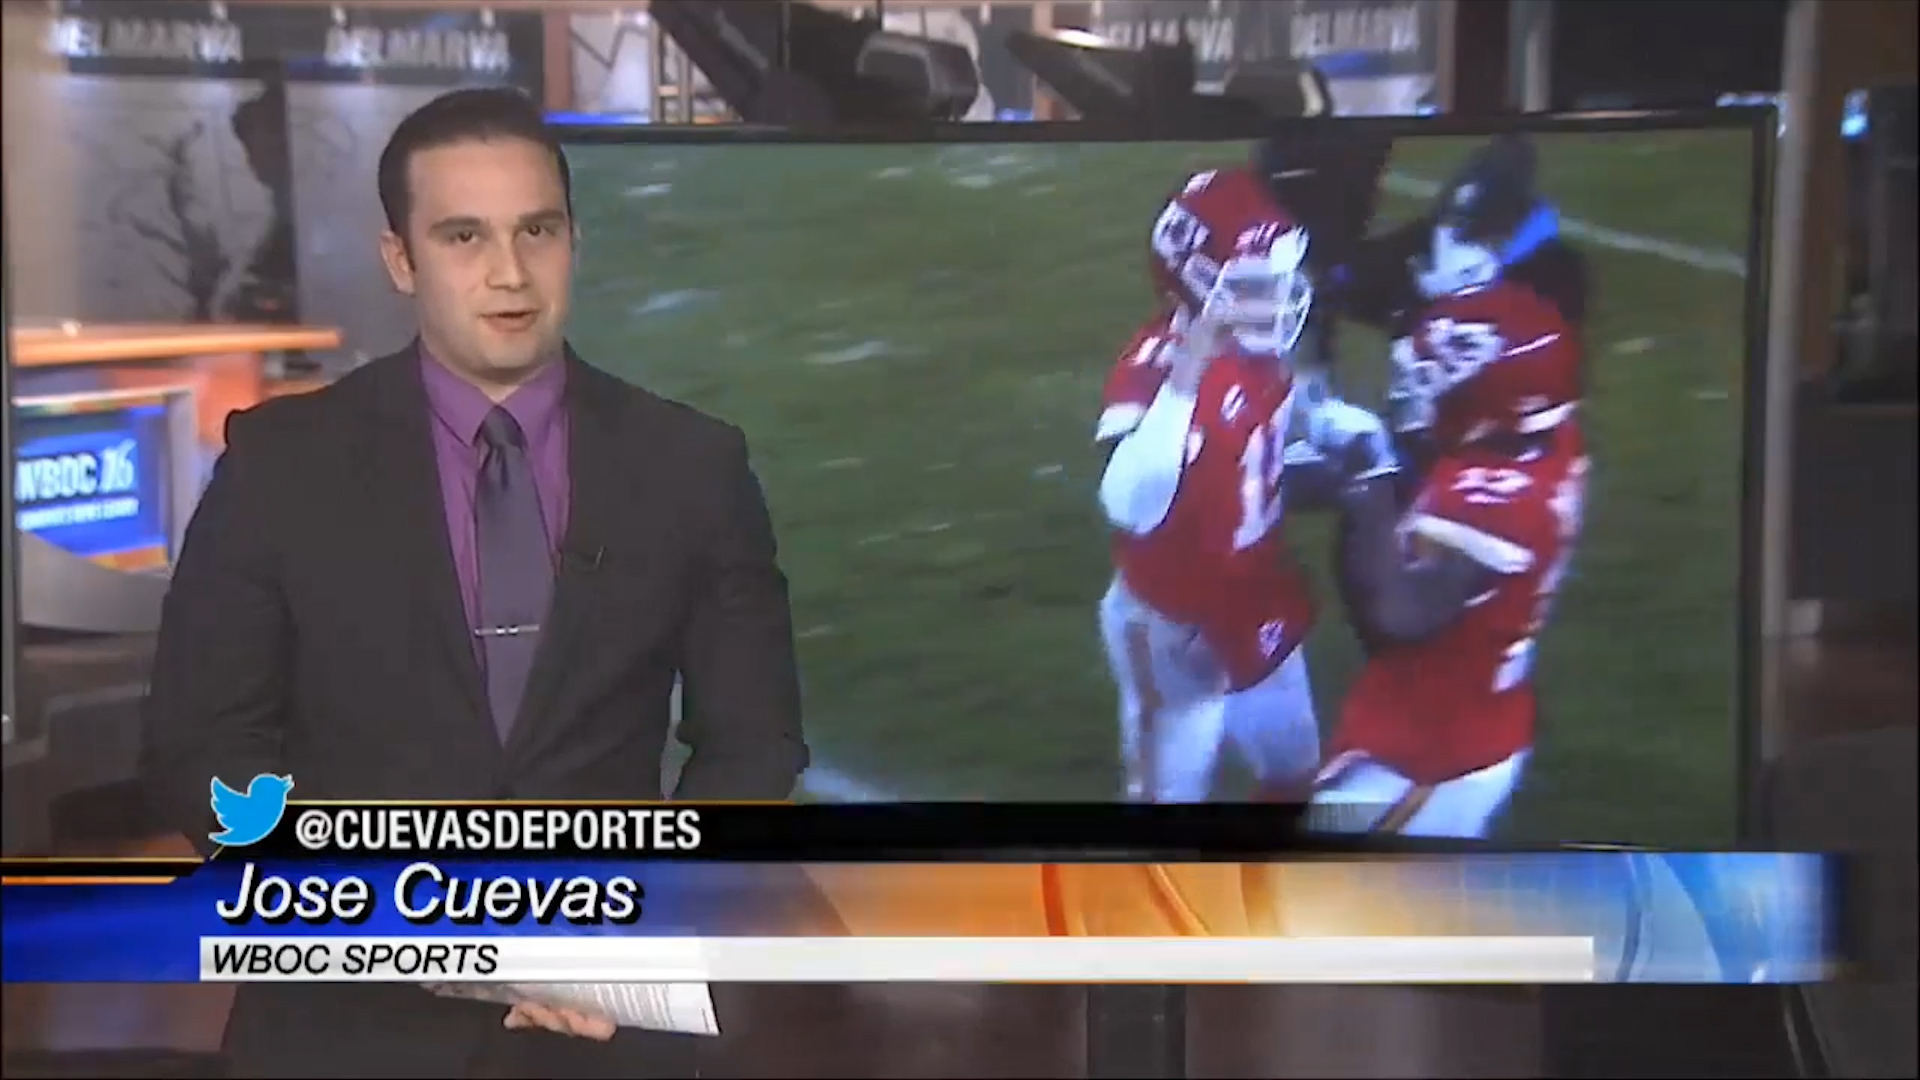 WBOC Sports Report – Saturday January 12, 2019